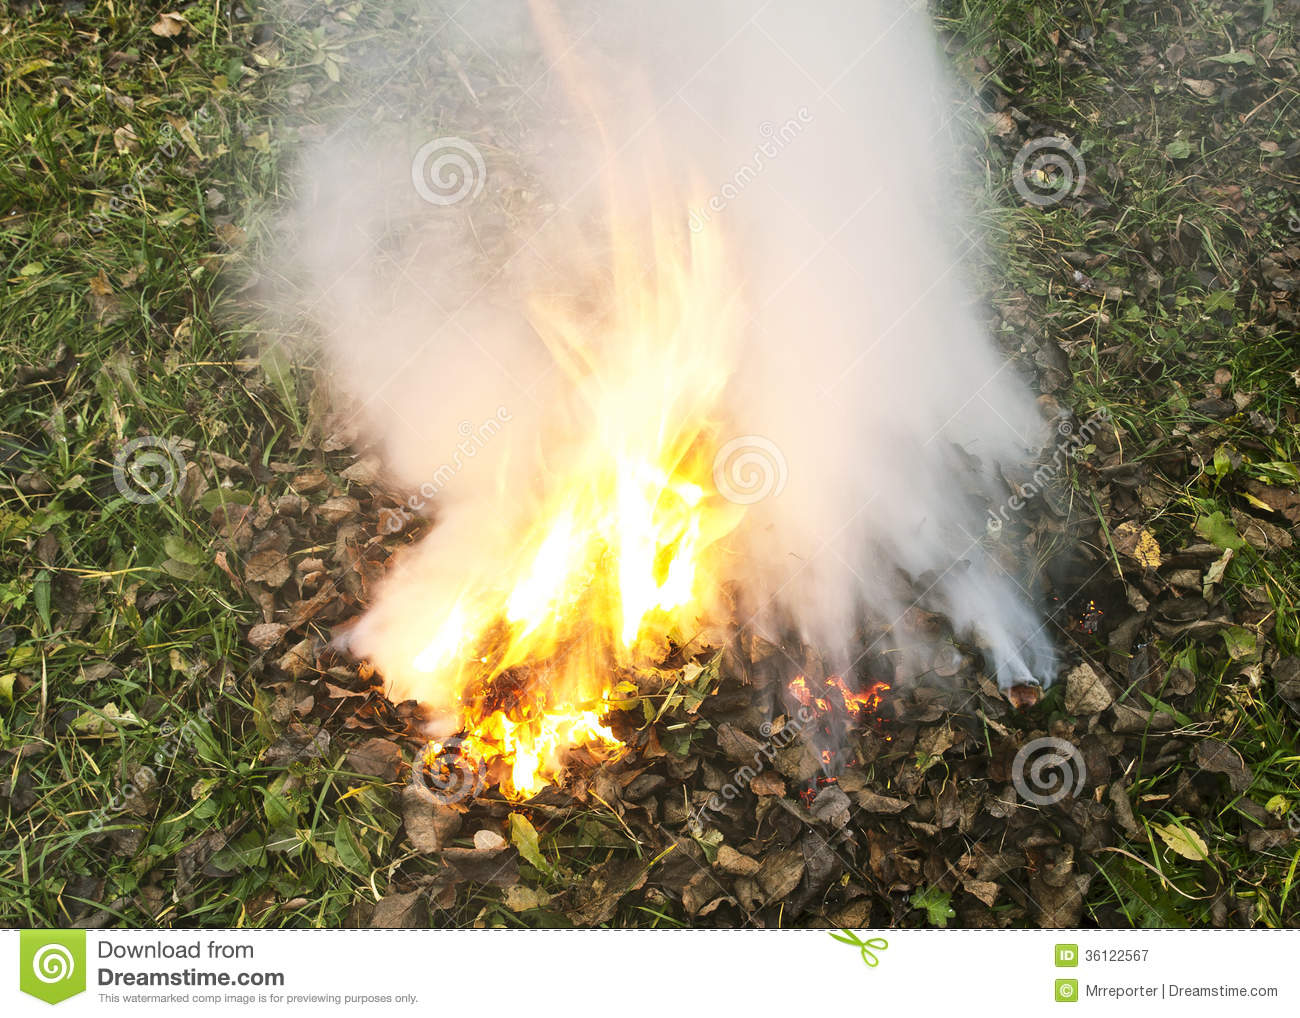 Fire Burning Dry Leaves Stock Photos, Images, & Pictures.